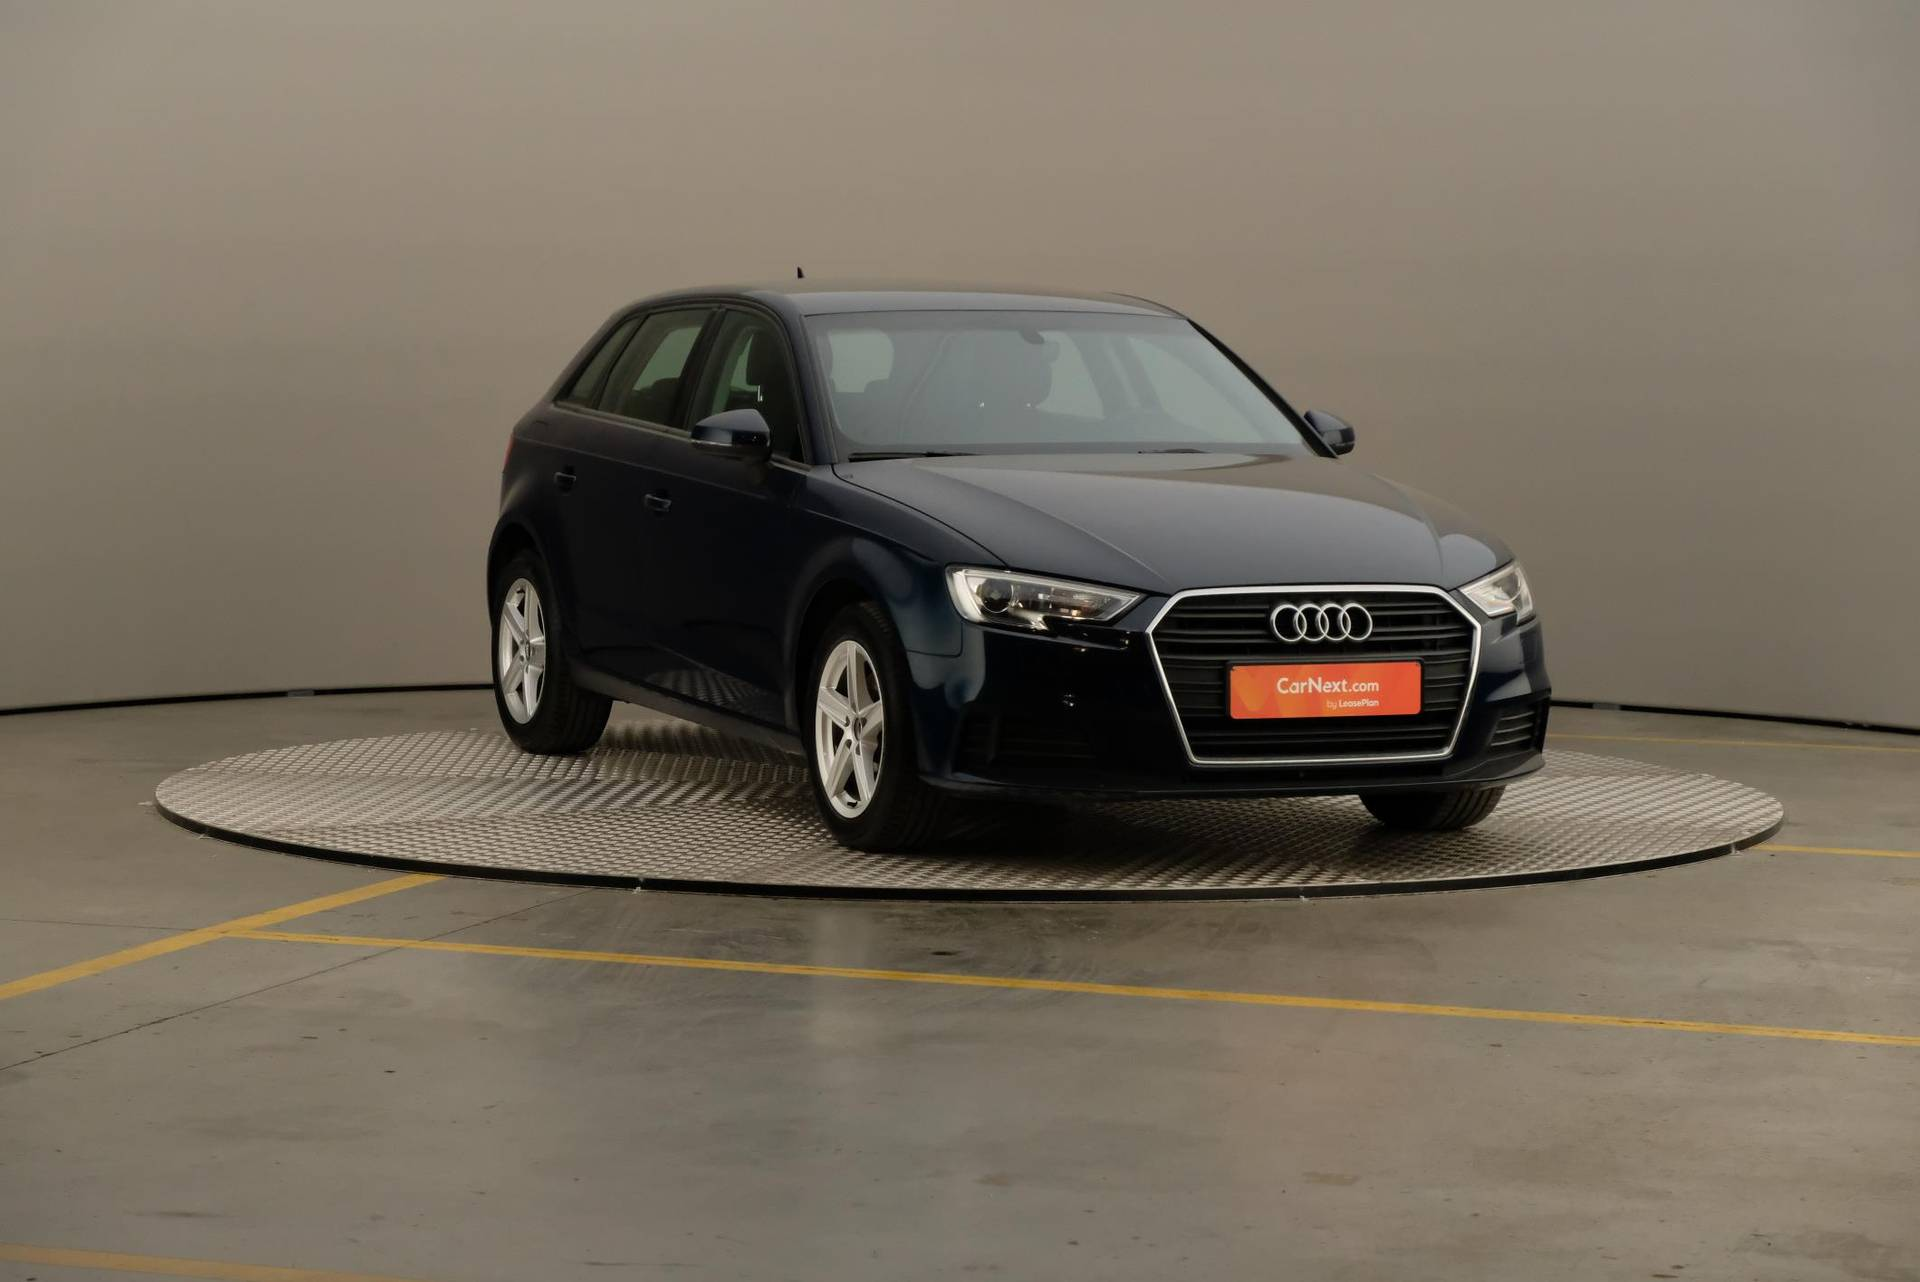 Audi A3 1.6 TDi Pack Intuition Plus Euro6, 360-image29